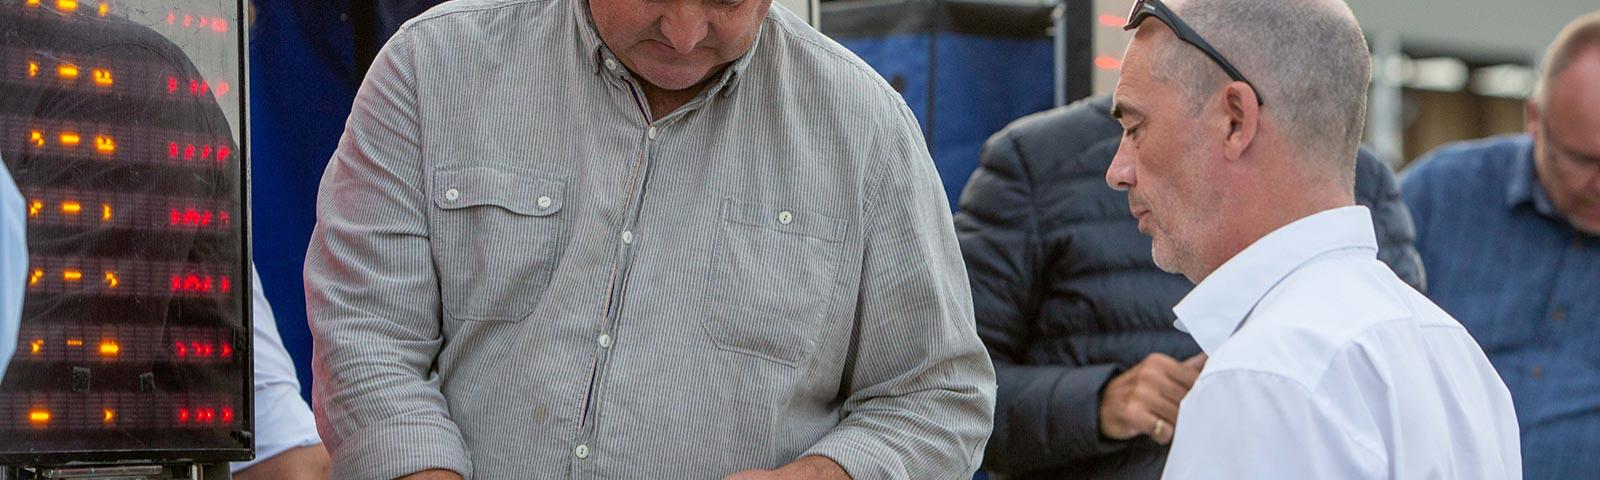 Racegoer placing a bet with a bookmaker.